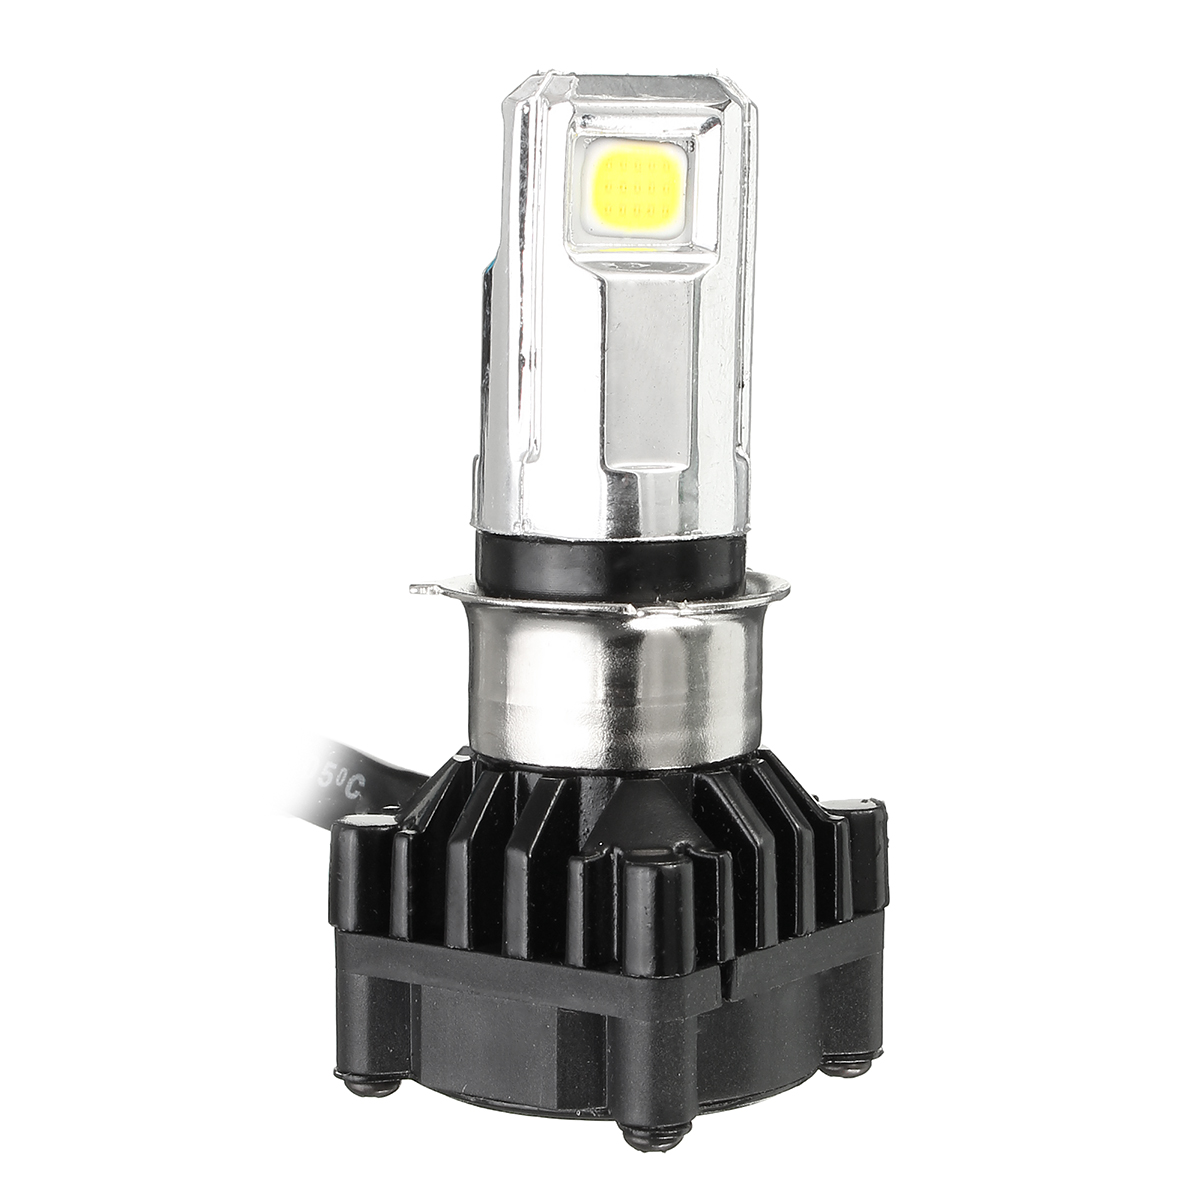 3 LED 3500LM 6000k Motorcycle Bike Car H4 COB HI/Lo Beam Headlight Lamp Bulb Kit